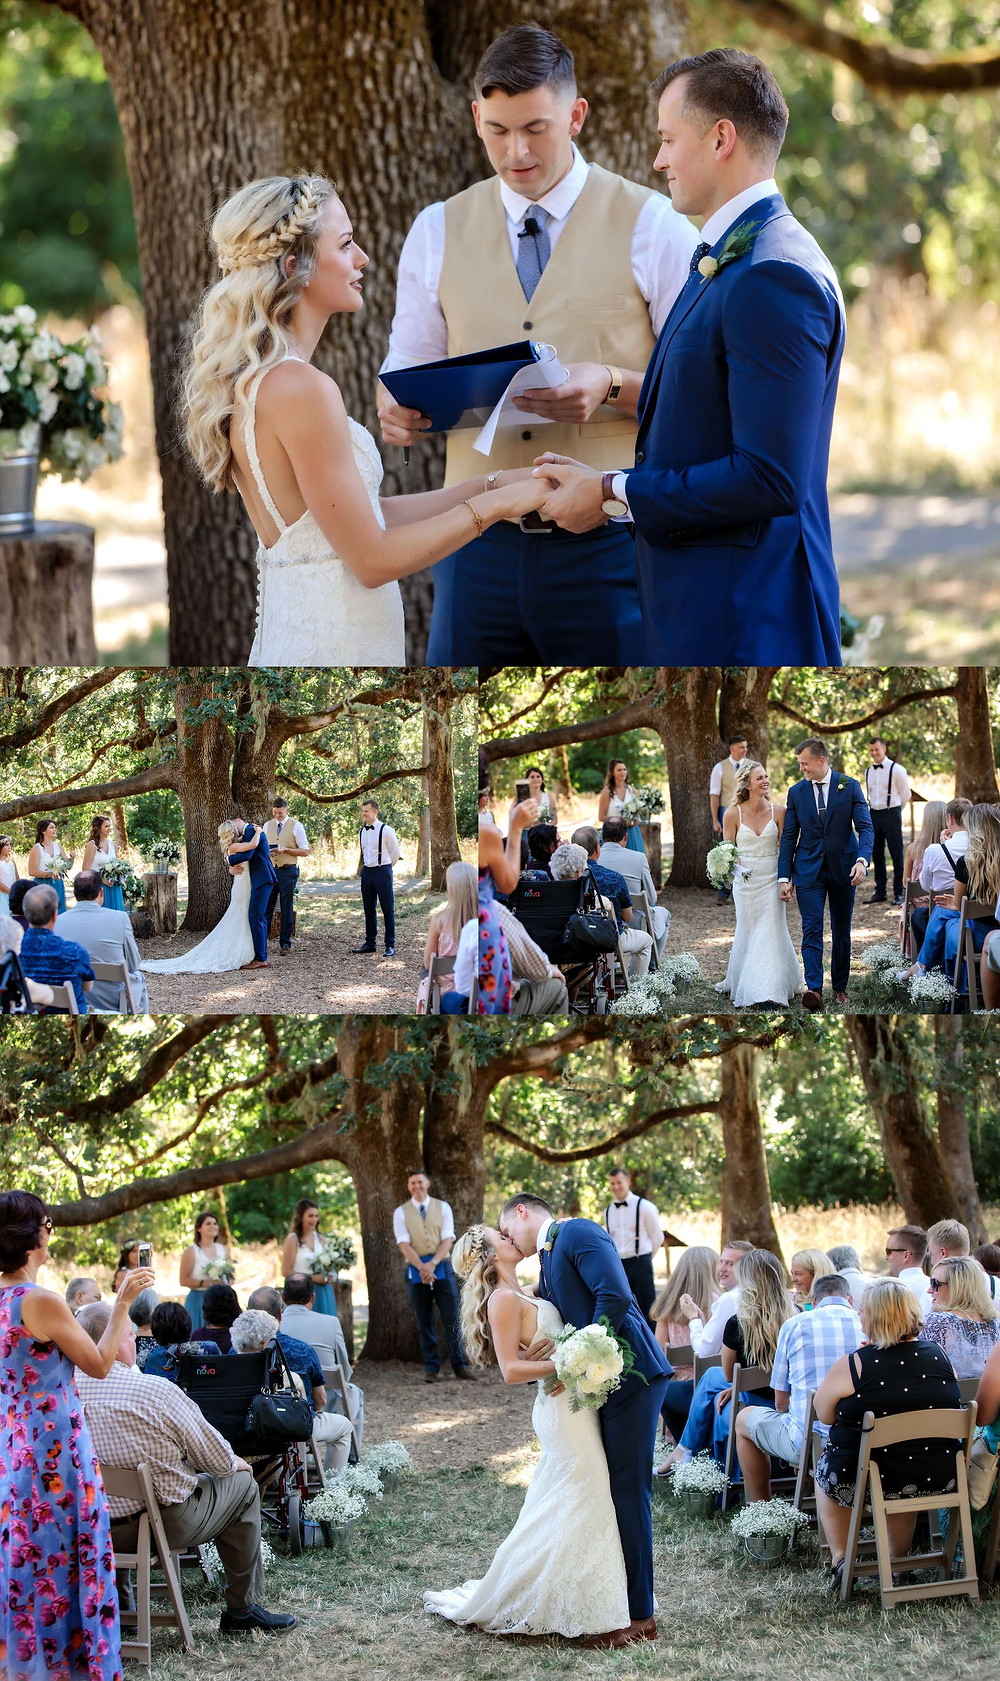 Wedding under oak tree at Mount Pisgah